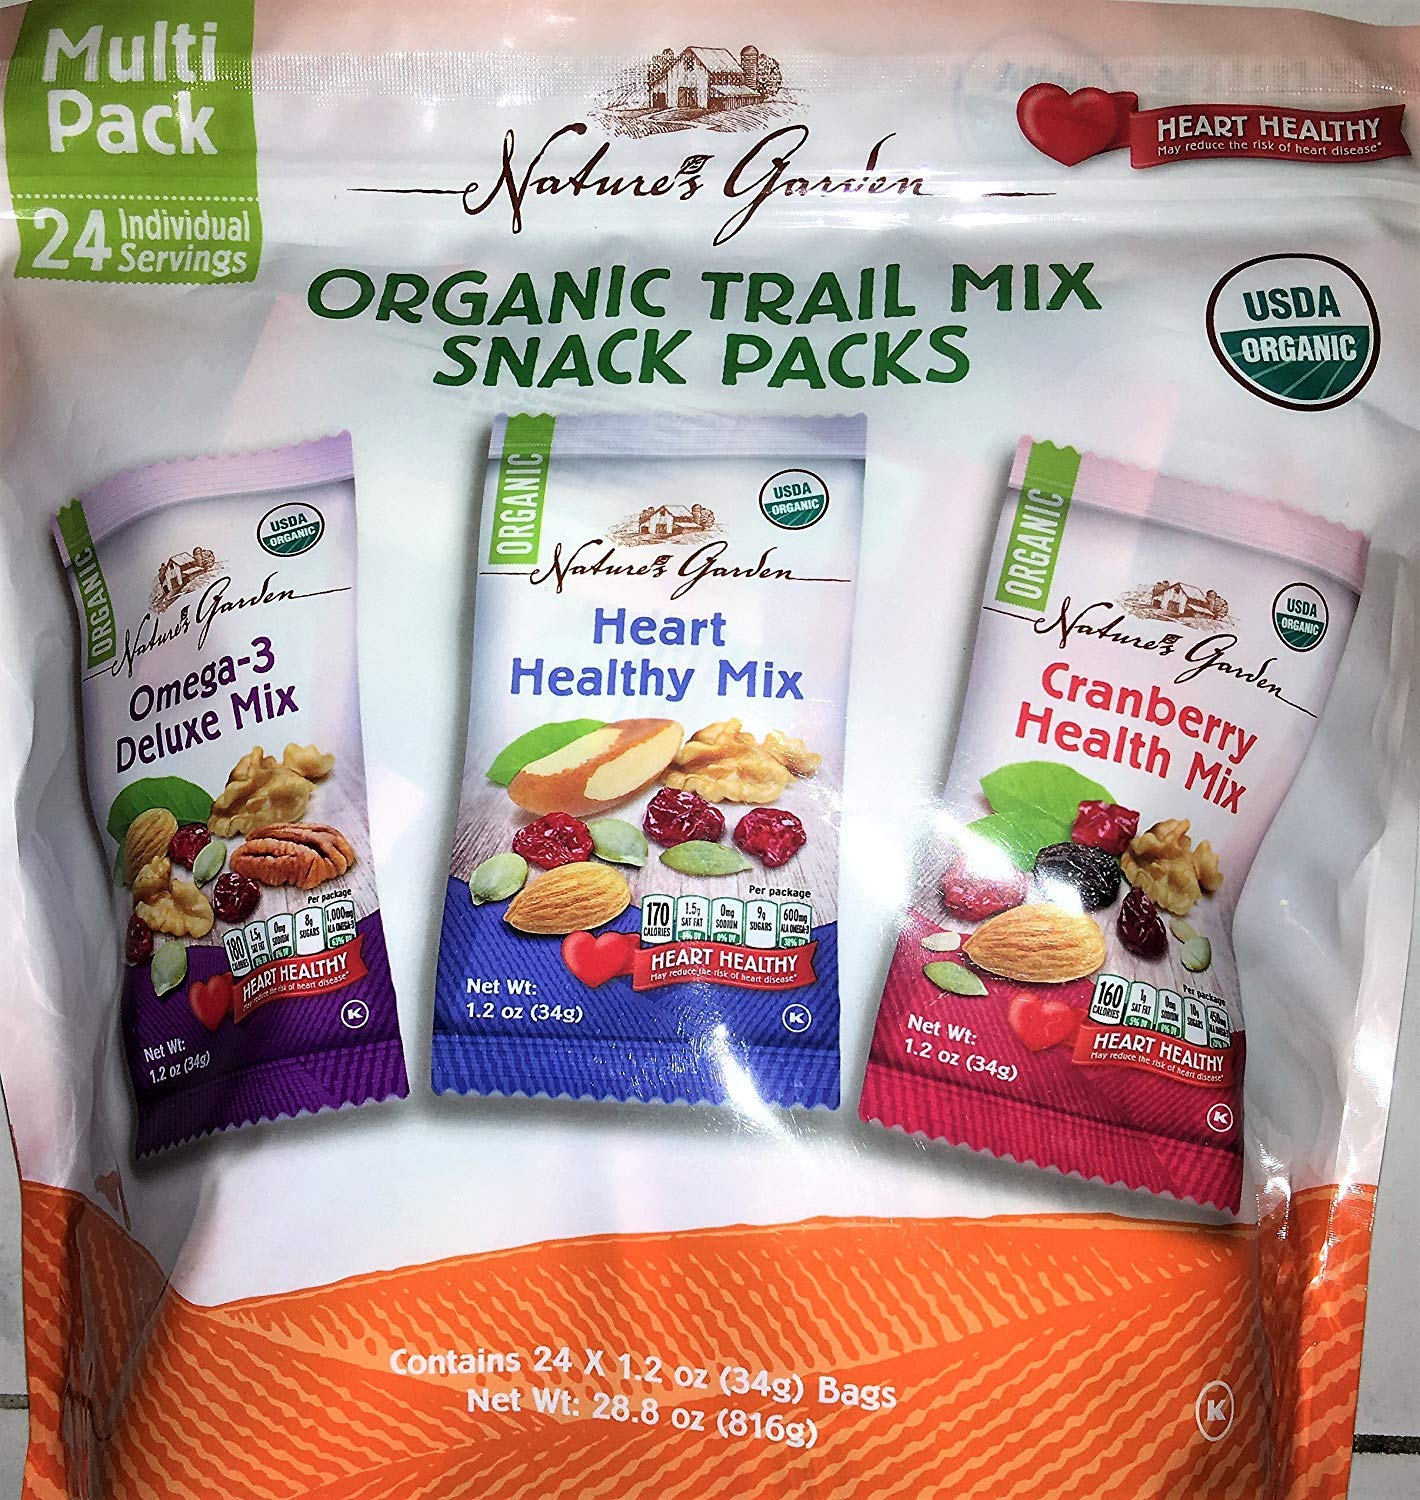 Nature's Garden Organic Trail Mix Snack Packs, Multi Pack 1.2 oz - Pack of 24 (Total 28.8 oz) by Nature's Garden (Image #1)